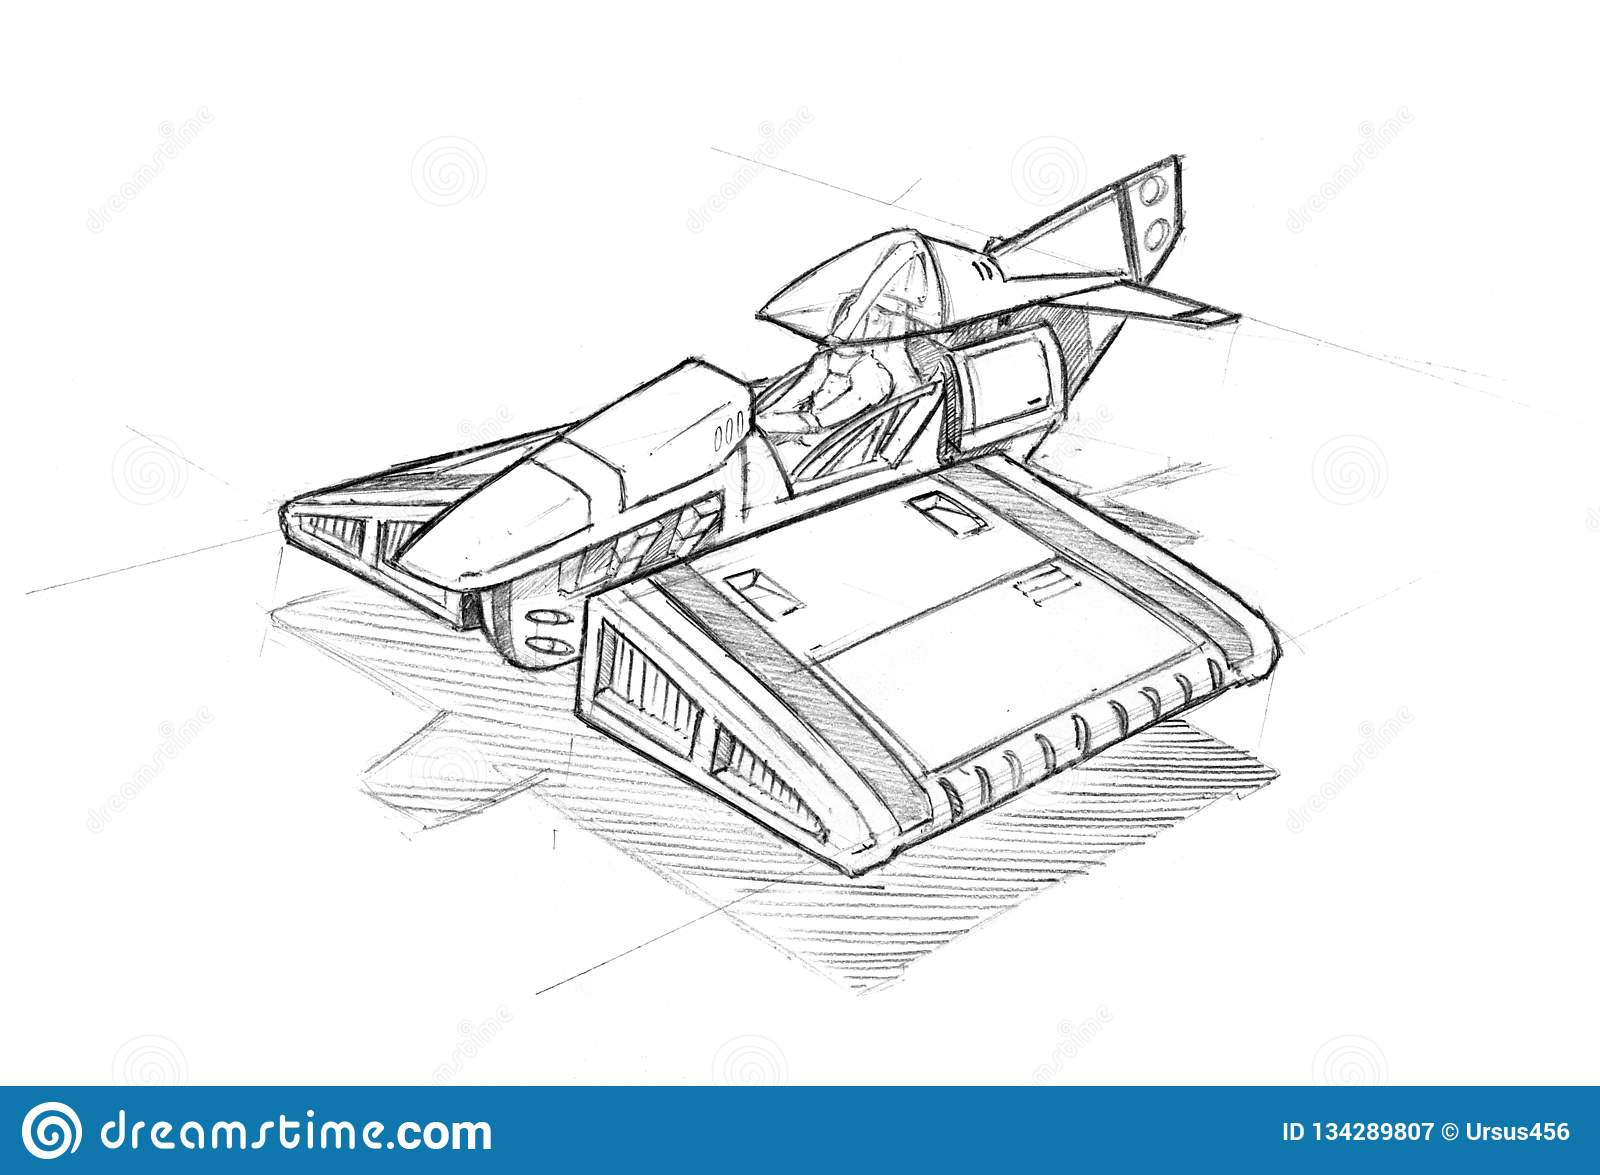 hight resolution of rough black and white concept art drawing of small sci fi or futuristic aircraft or hovercraft